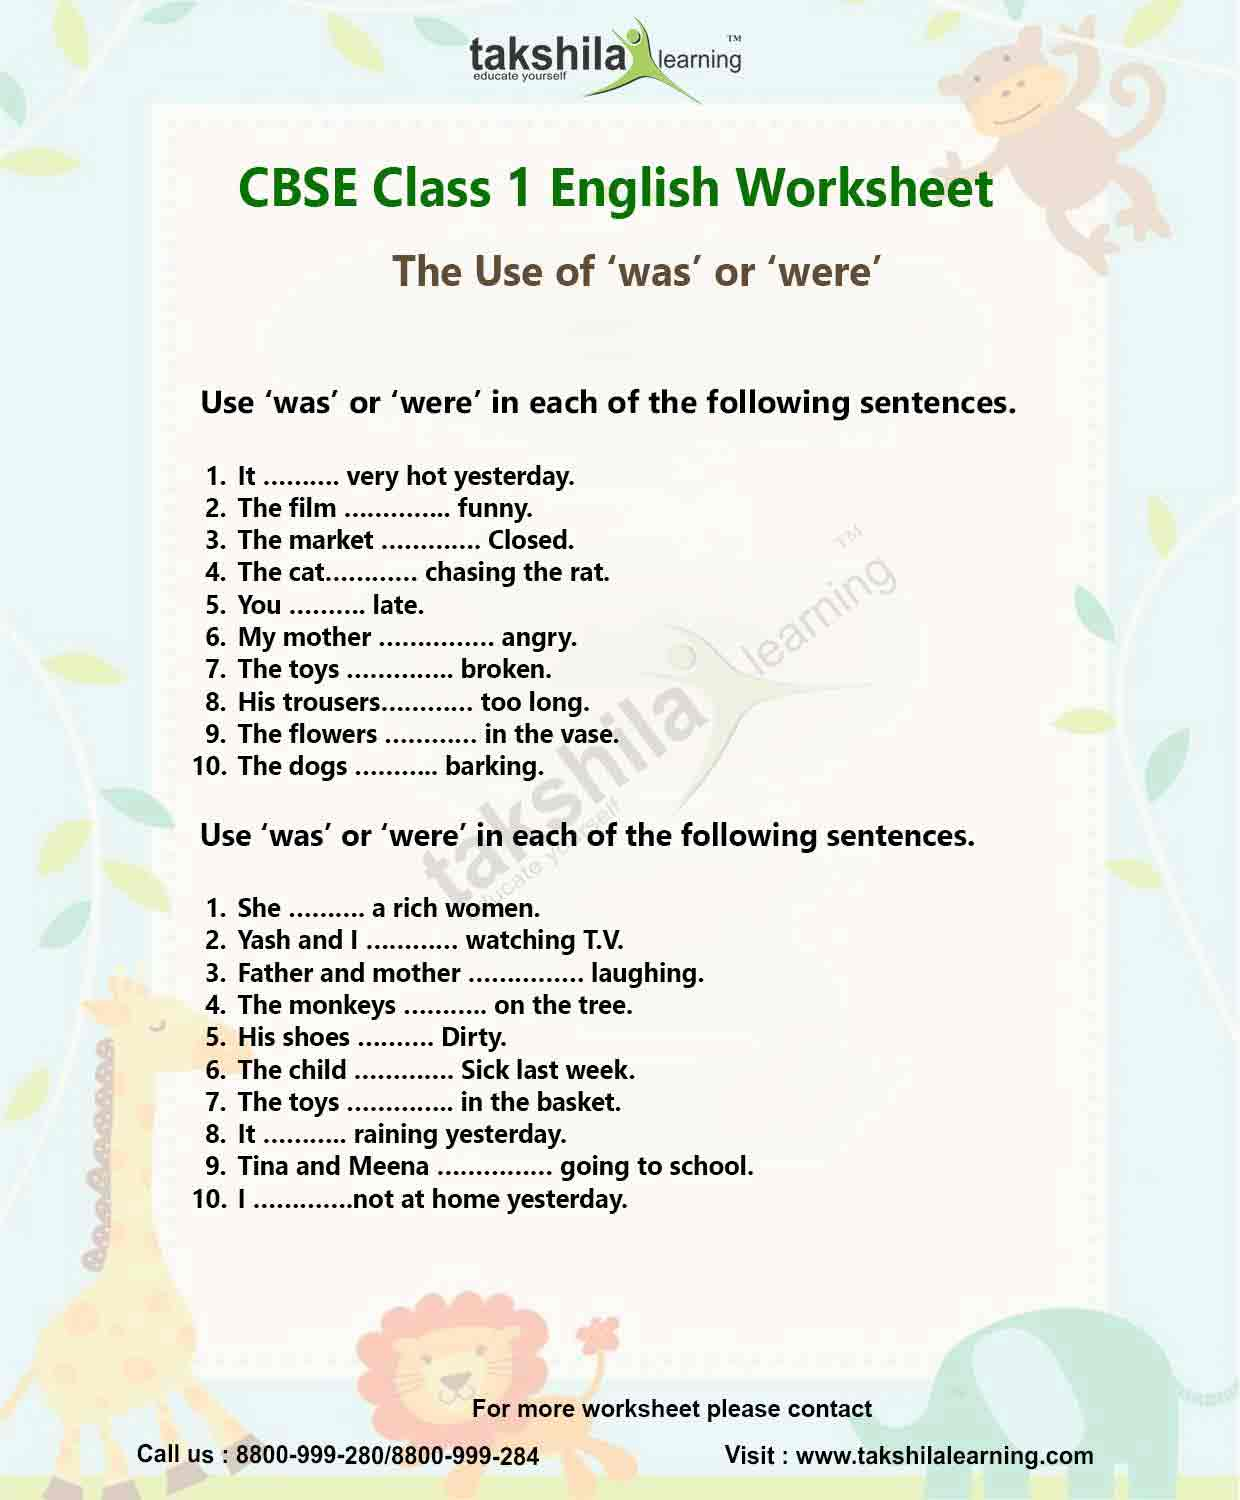 Worksheet Of English For Class 1